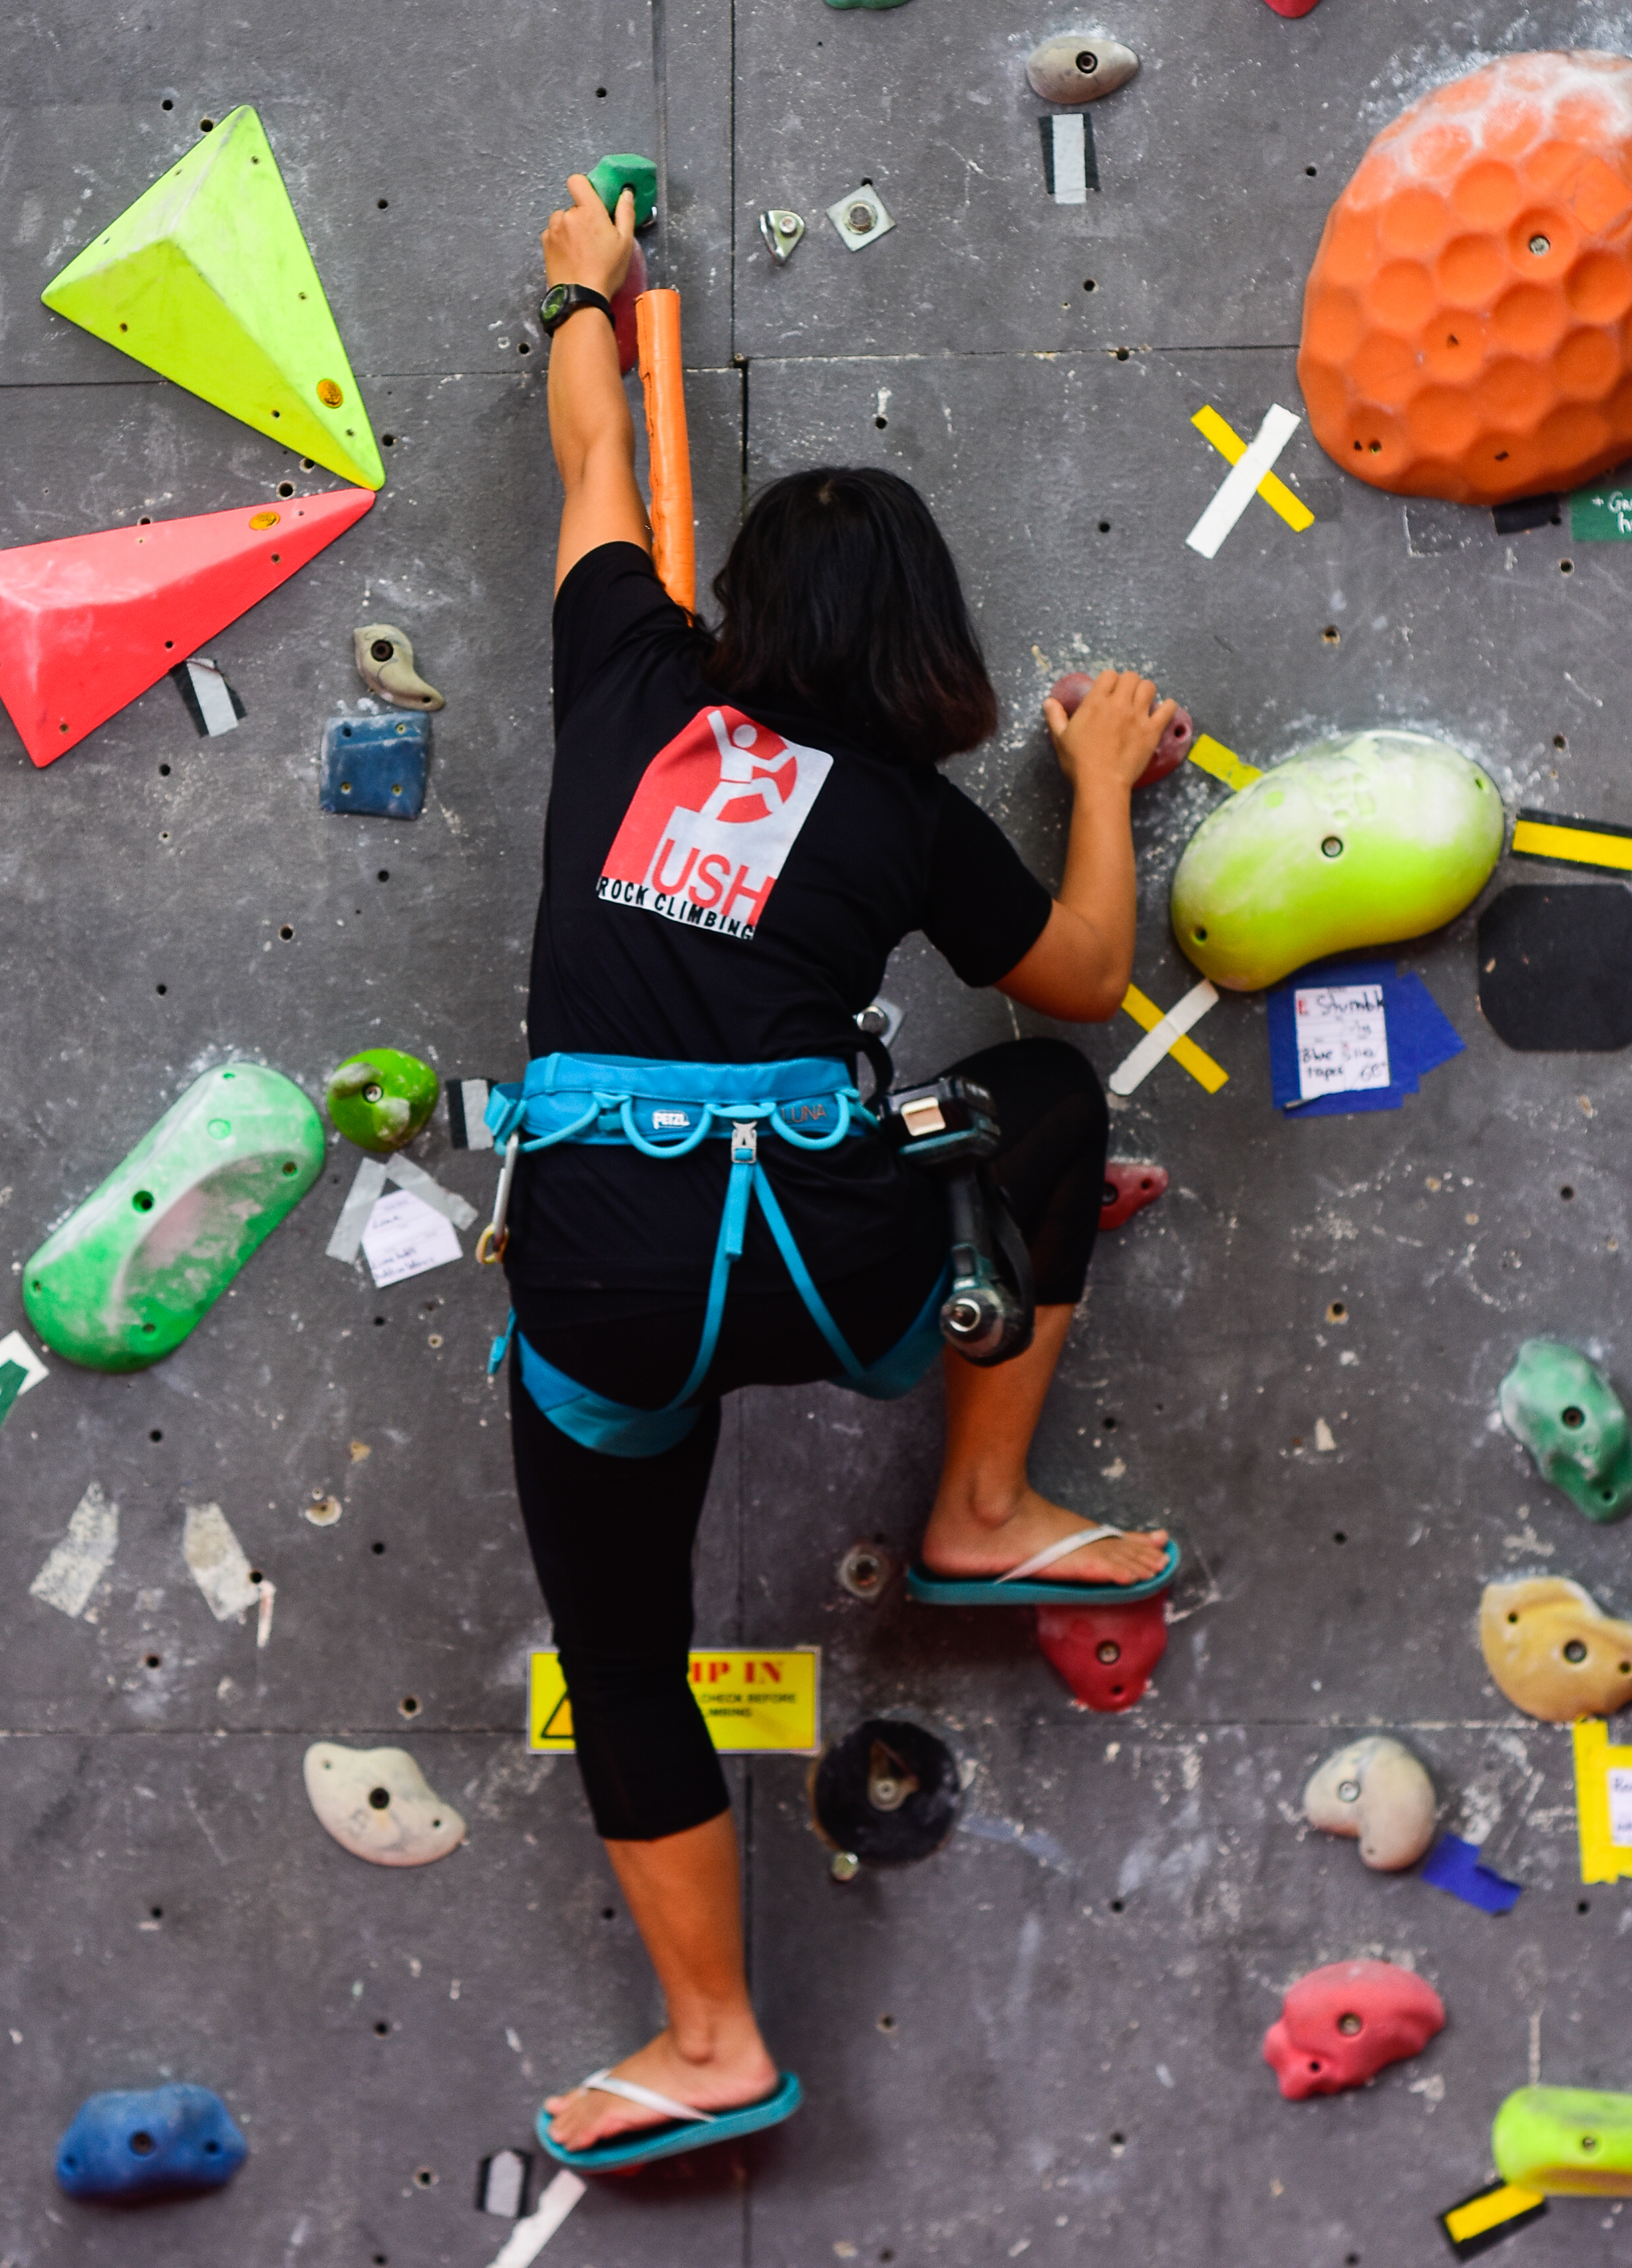 No training plan? Vy or any of our instructors at Push Climbing can help you build one.